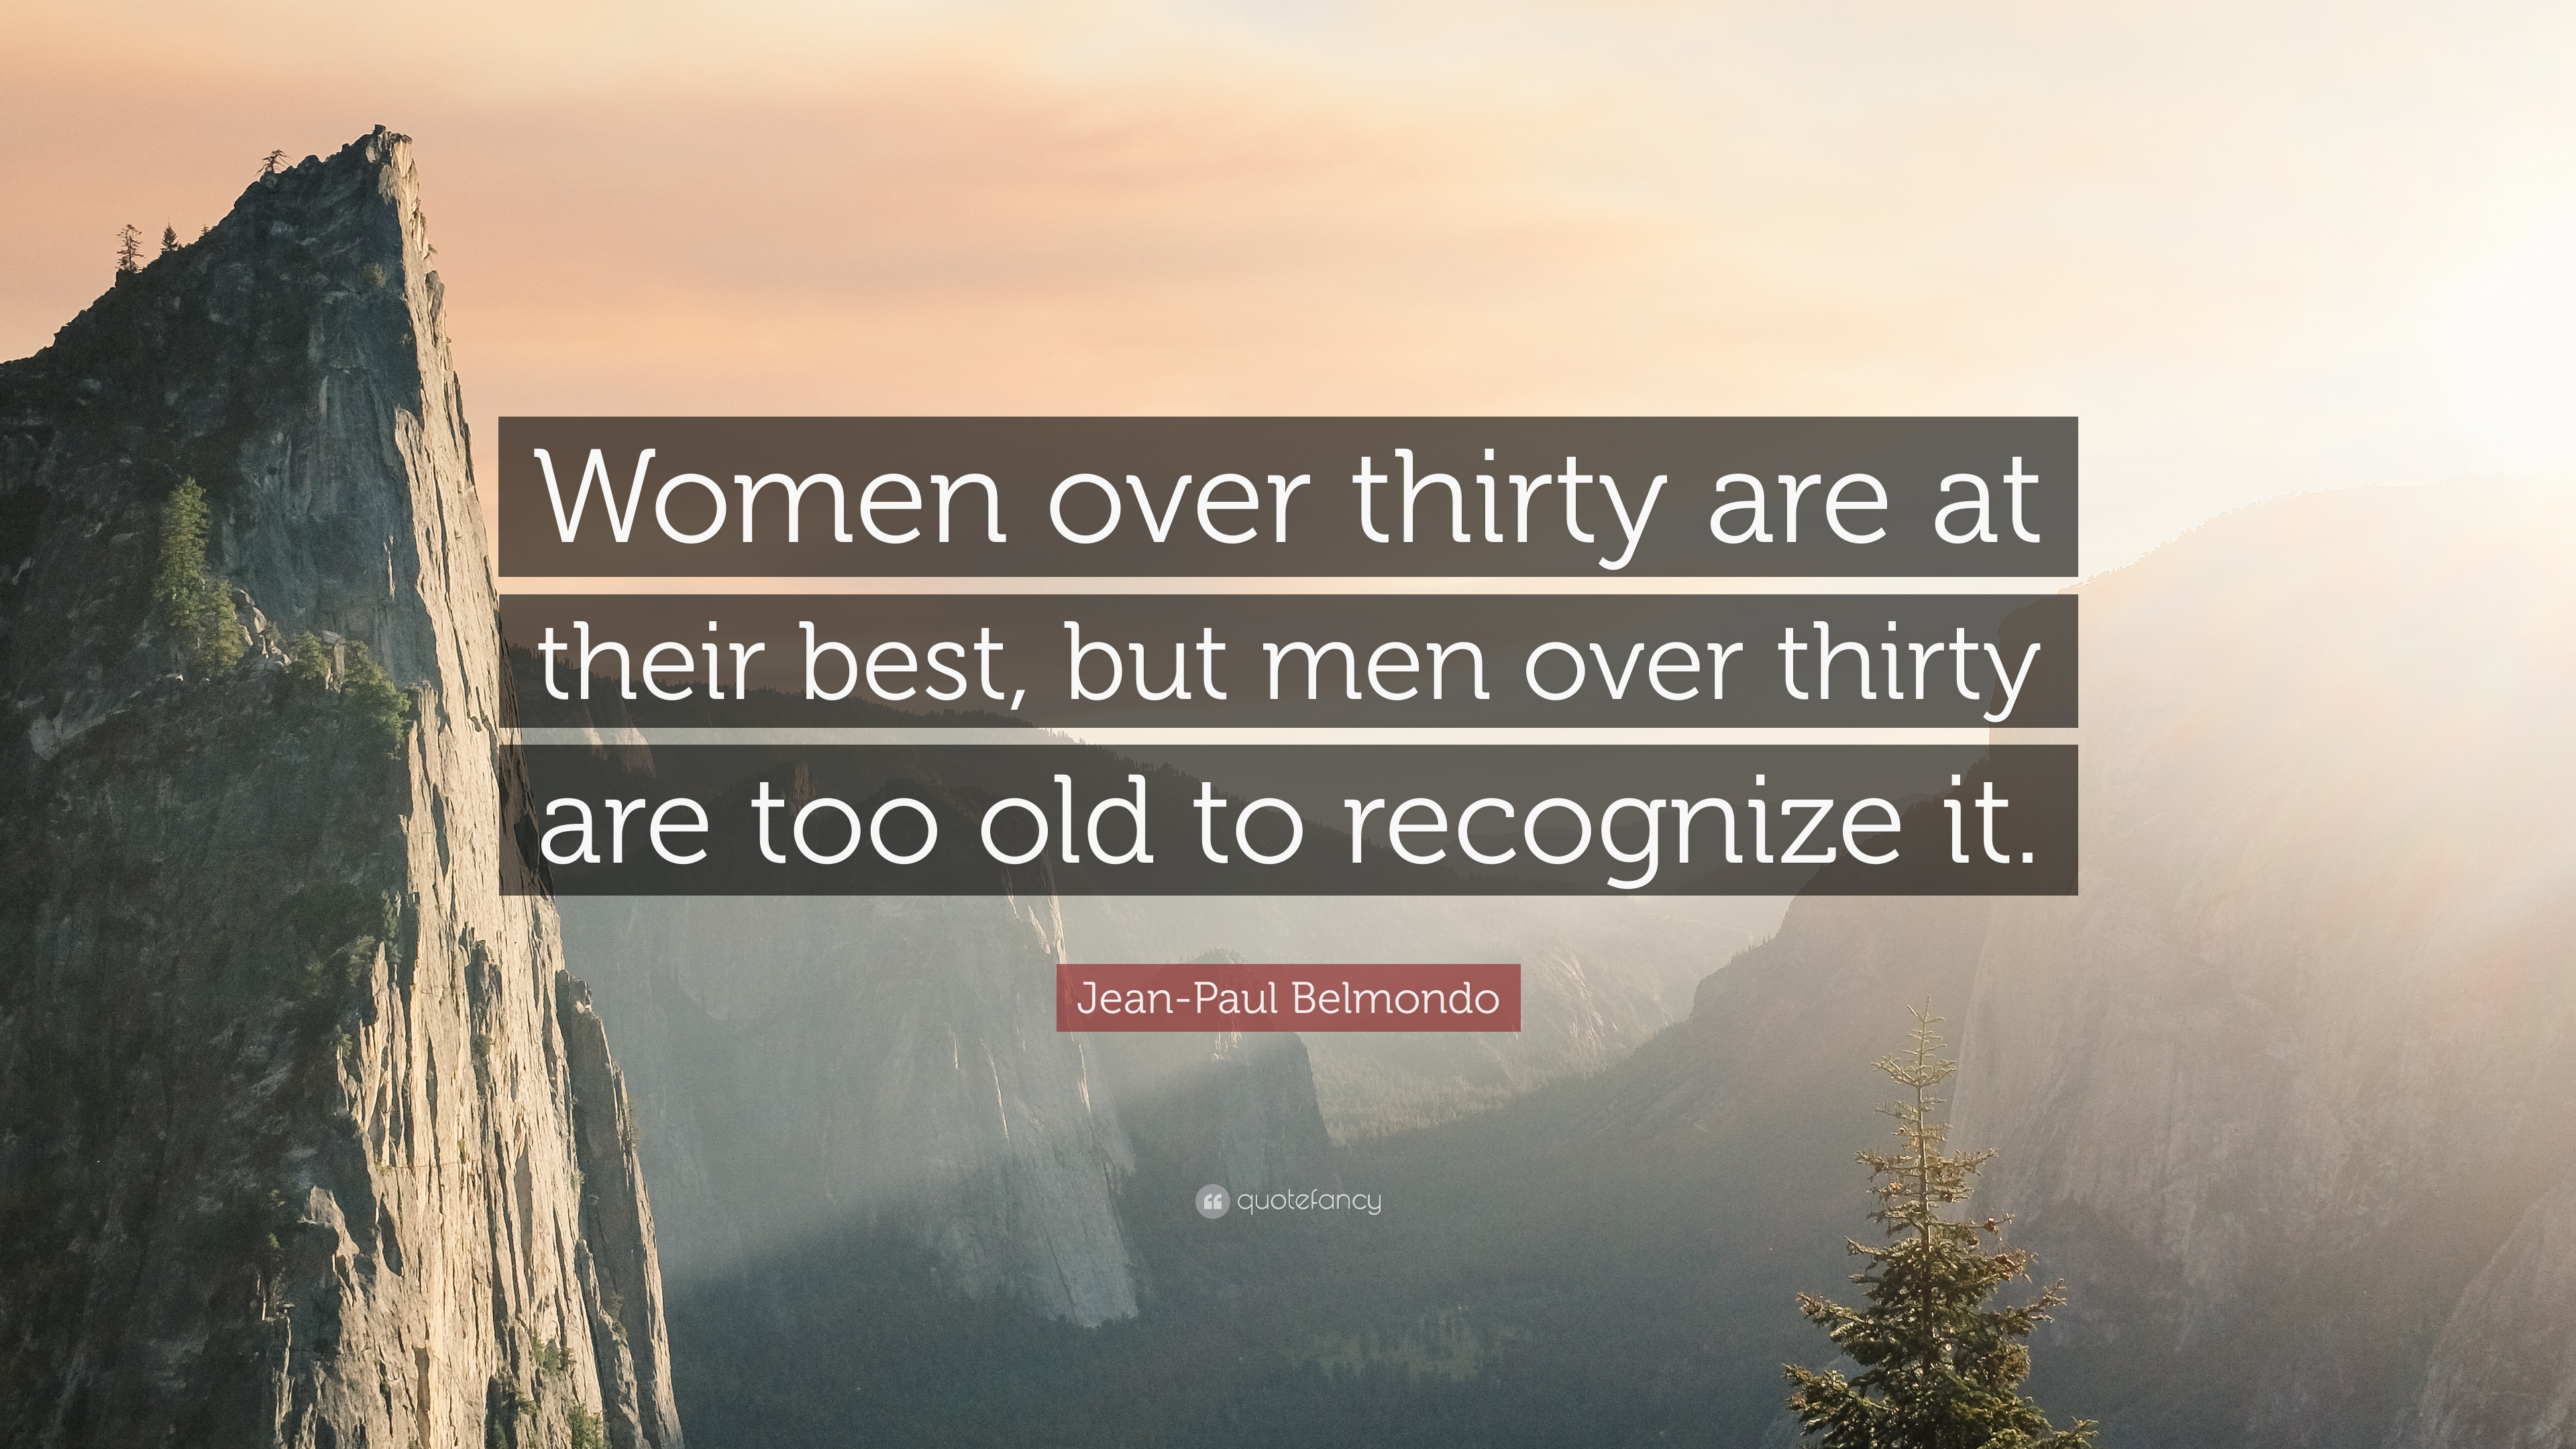 Men over thirty